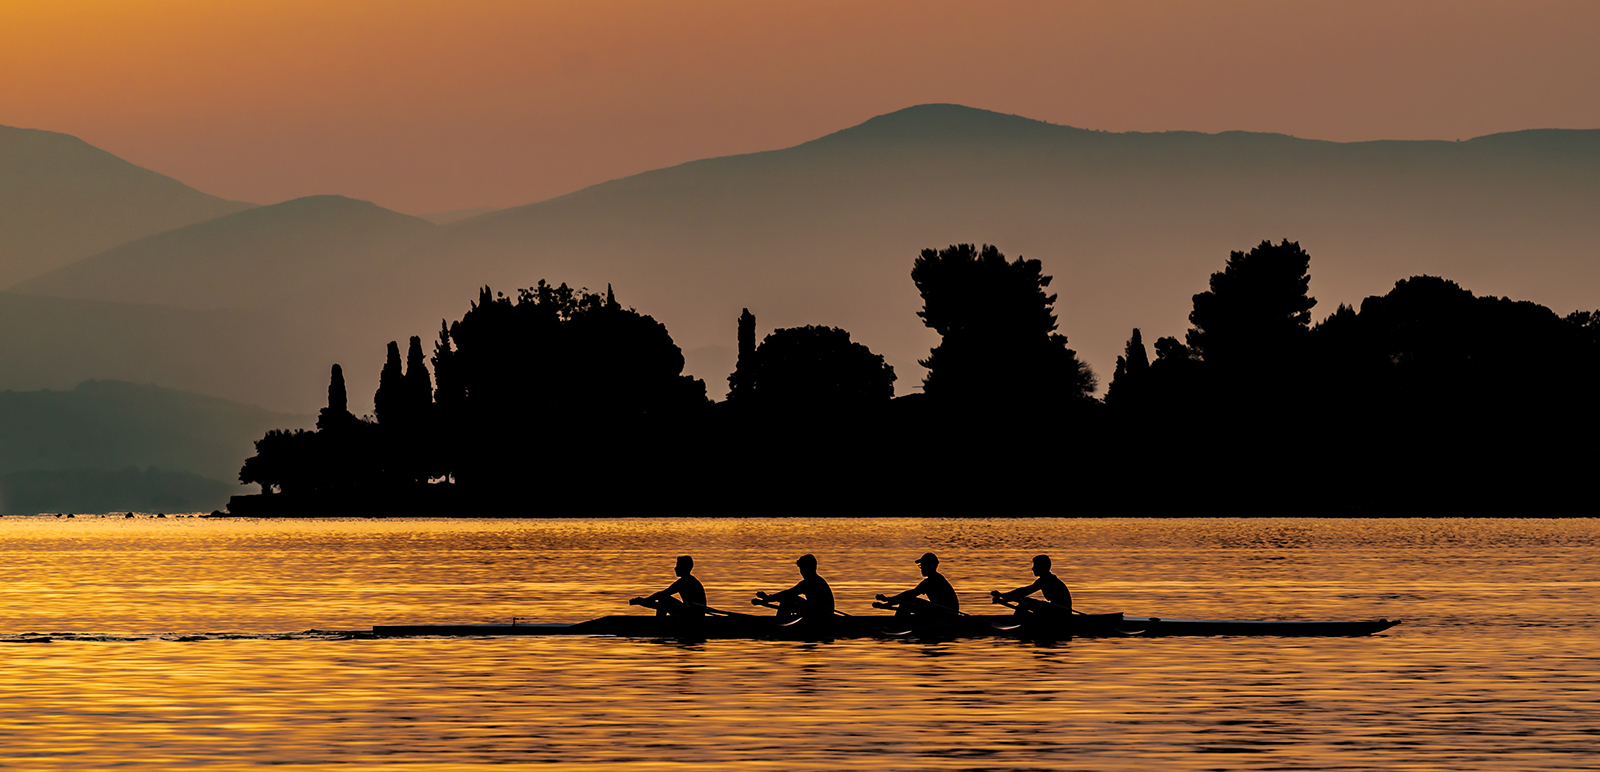 <h5>Coxless Four at Dawn</h5><p>Carol Green - Beginner																																																	</p>